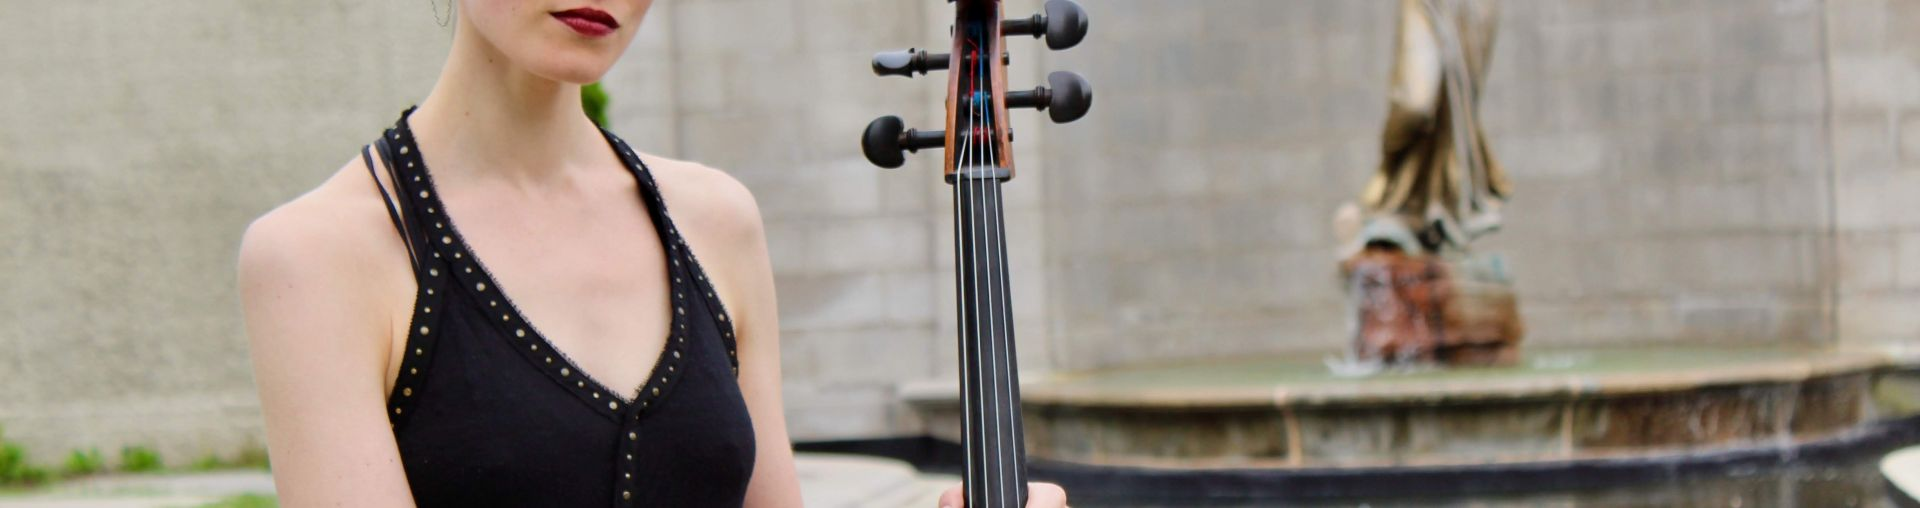 The Evolution of the Cello Suite - The Complete Experience